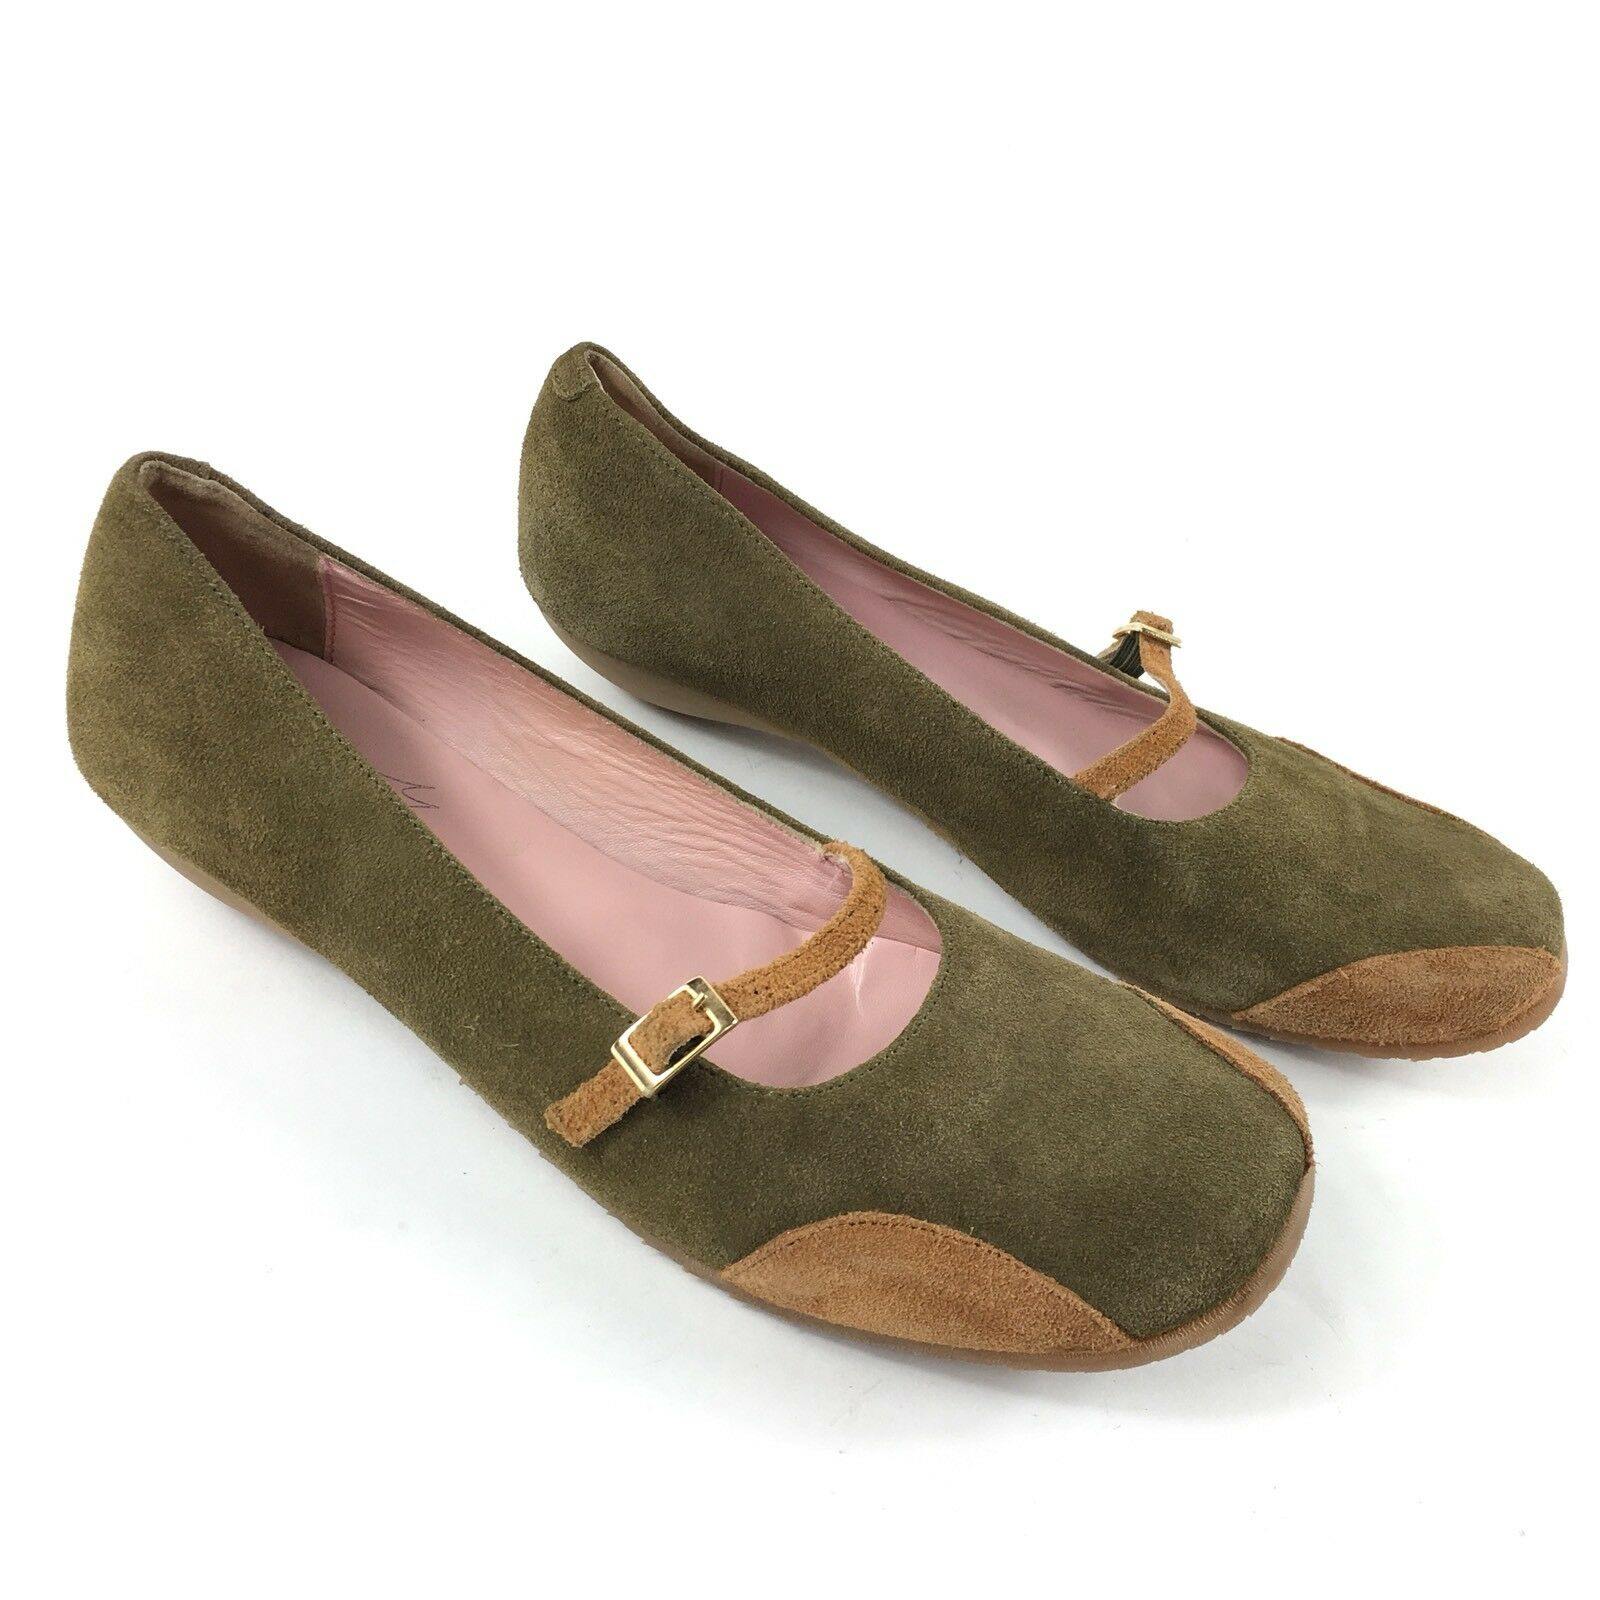 Jeffrey Campbell Mary Jane Women's 9.5 Green Brown Suede